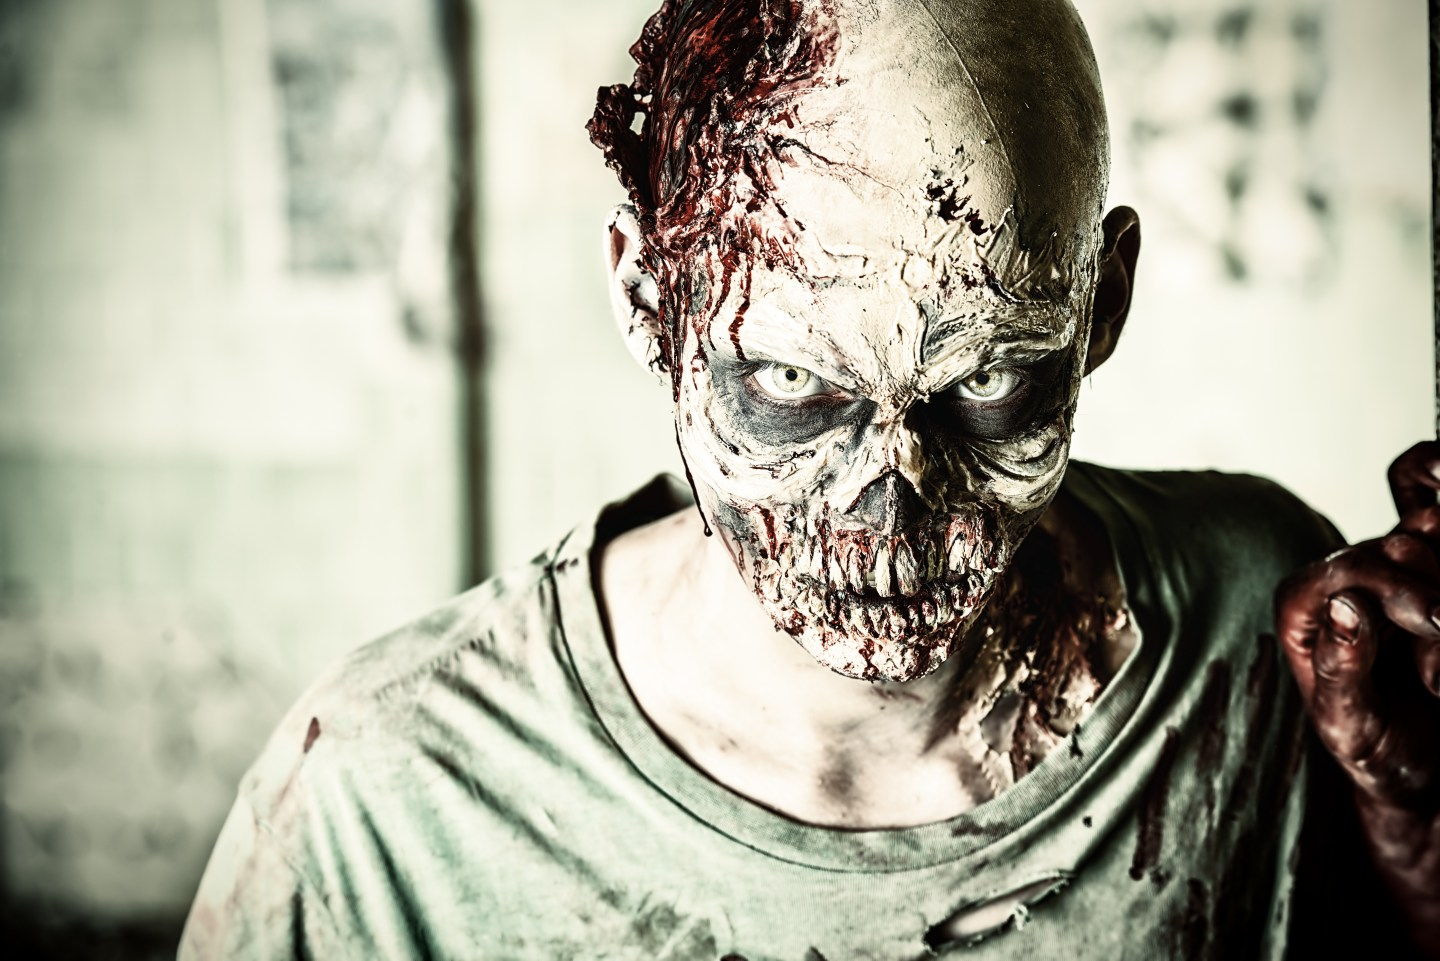 quirky UK weekend ideas - zombie apocalypse experience